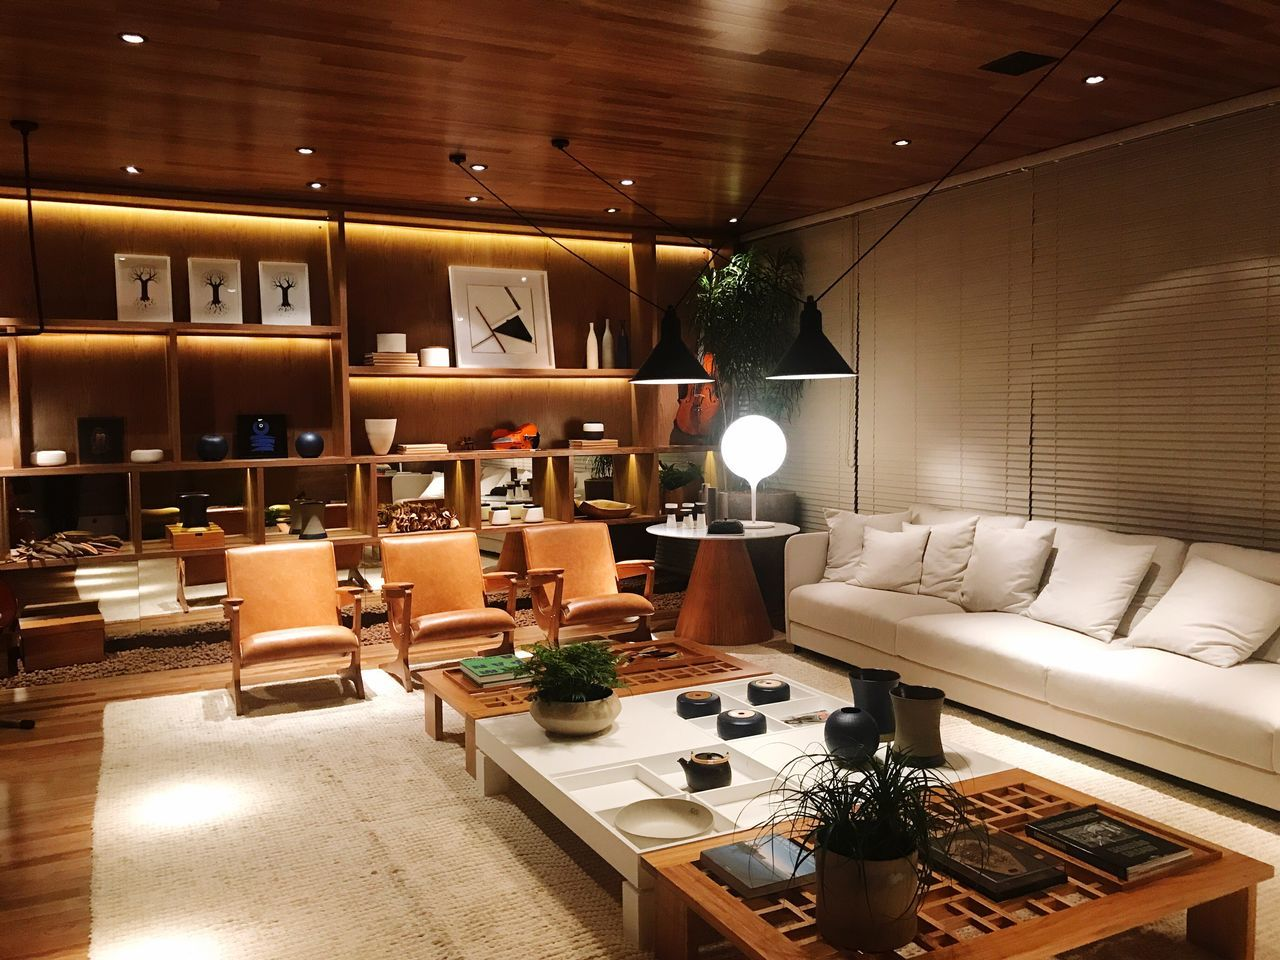 Luxury Home Showcase Interior Indoors  Home Interior Table Domestic Room Sofa Illuminated No People Chair Modern Luxury Hotel Living Room Furniture Architecture Day